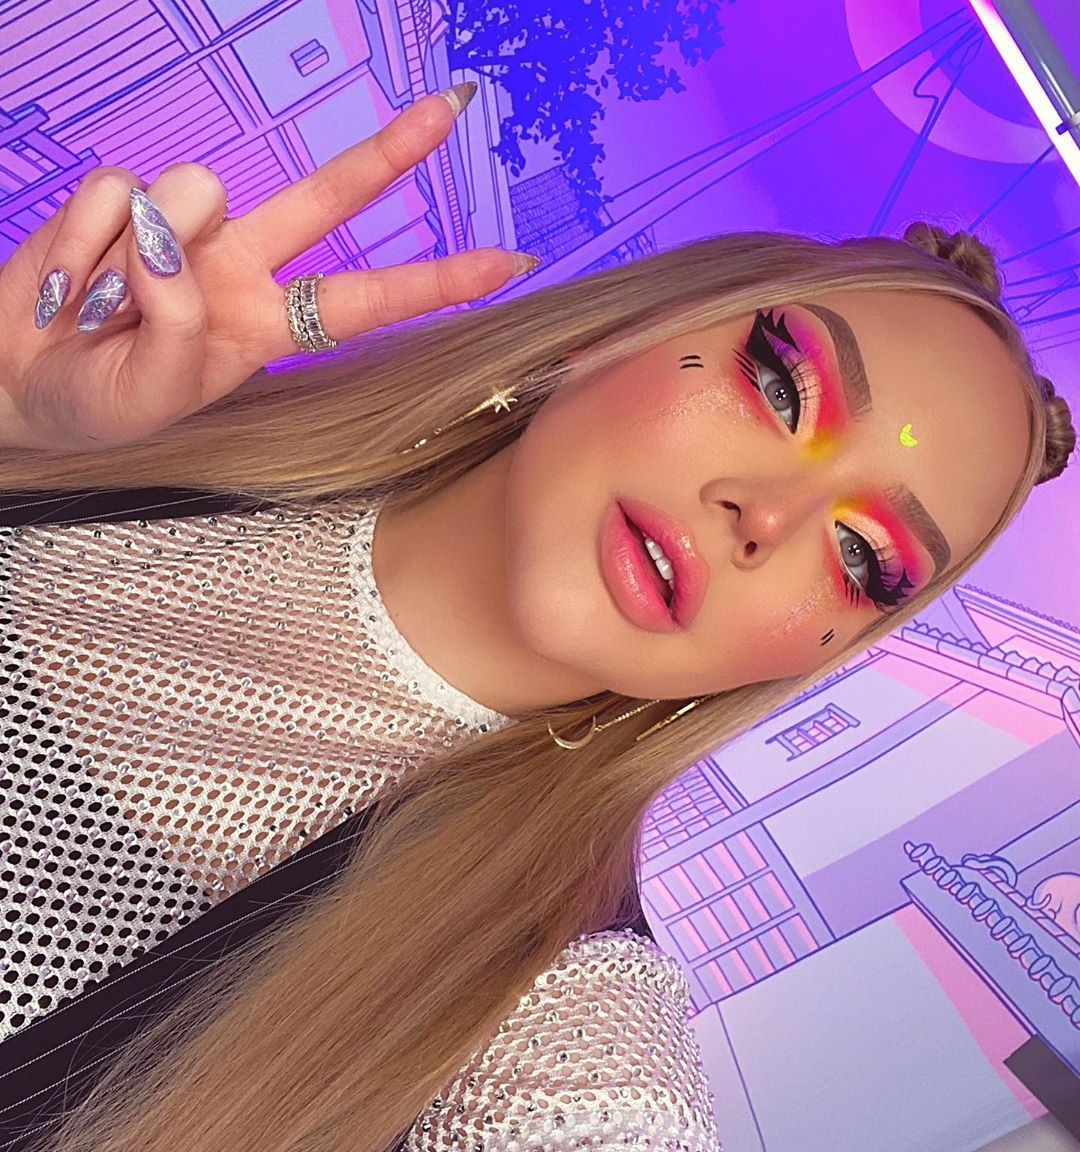 """@nikkietutorials shared a photo on Instagram: """"living my anime fantasy! ✌🏻 wearing the new @colourpopcosmetics Sailor Moon collection ✨ review on my channel 🐸☕️ LINK IN BIO!"""" • Feb 27, 2020 at 9:14pm UTC"""